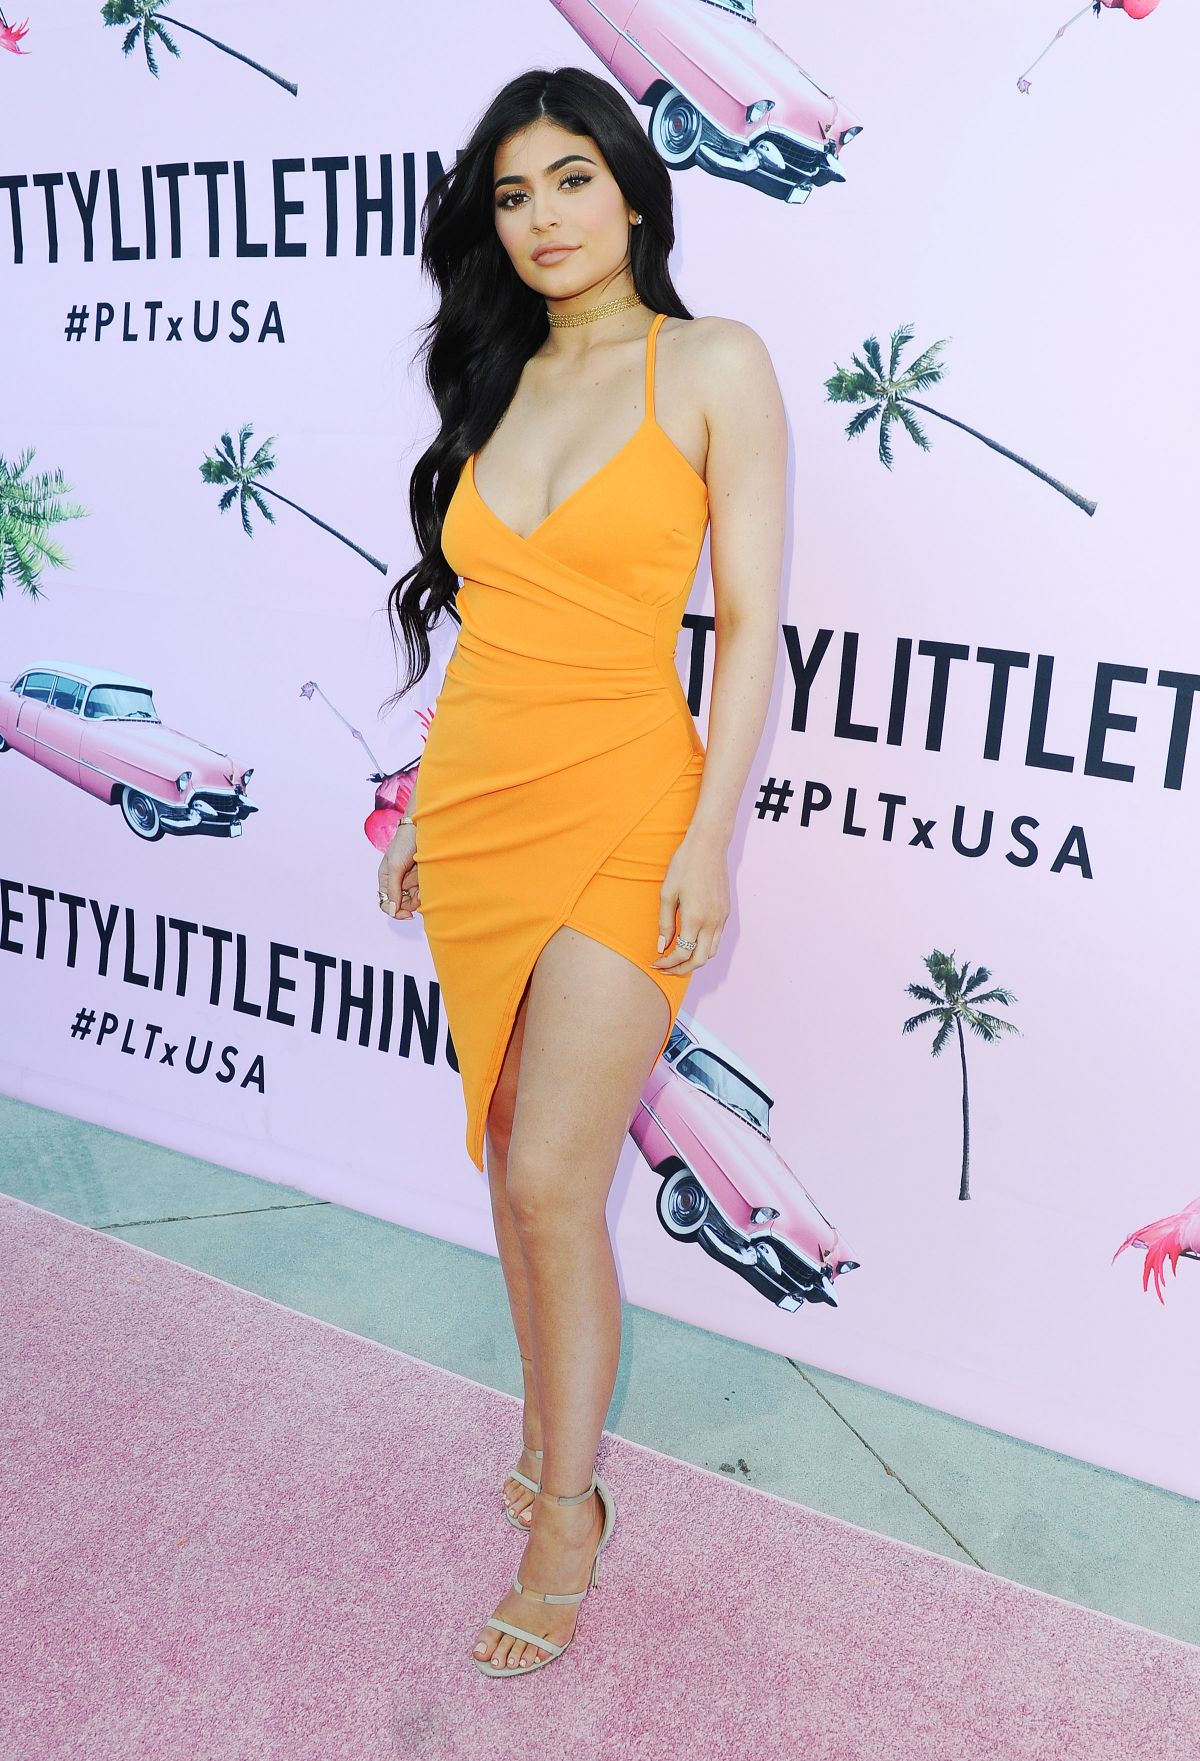 KYLIE JENNER at prettylittlething.com US Launch Party in Los Angeles ...